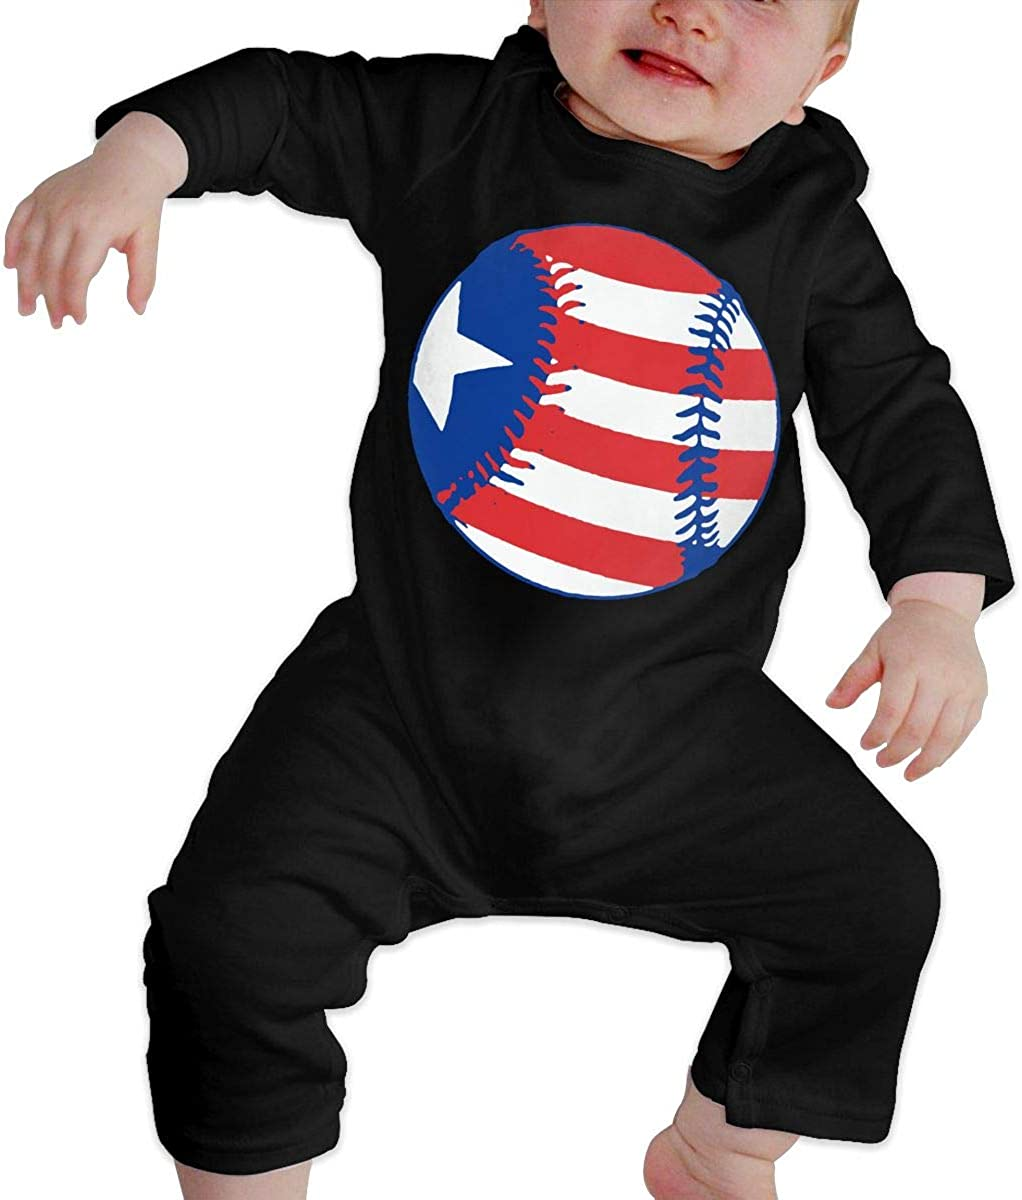 YELTY6F USA Flag Baseball Printed Boys Girls One-Piece Suit Long Sleeve Rompers Black